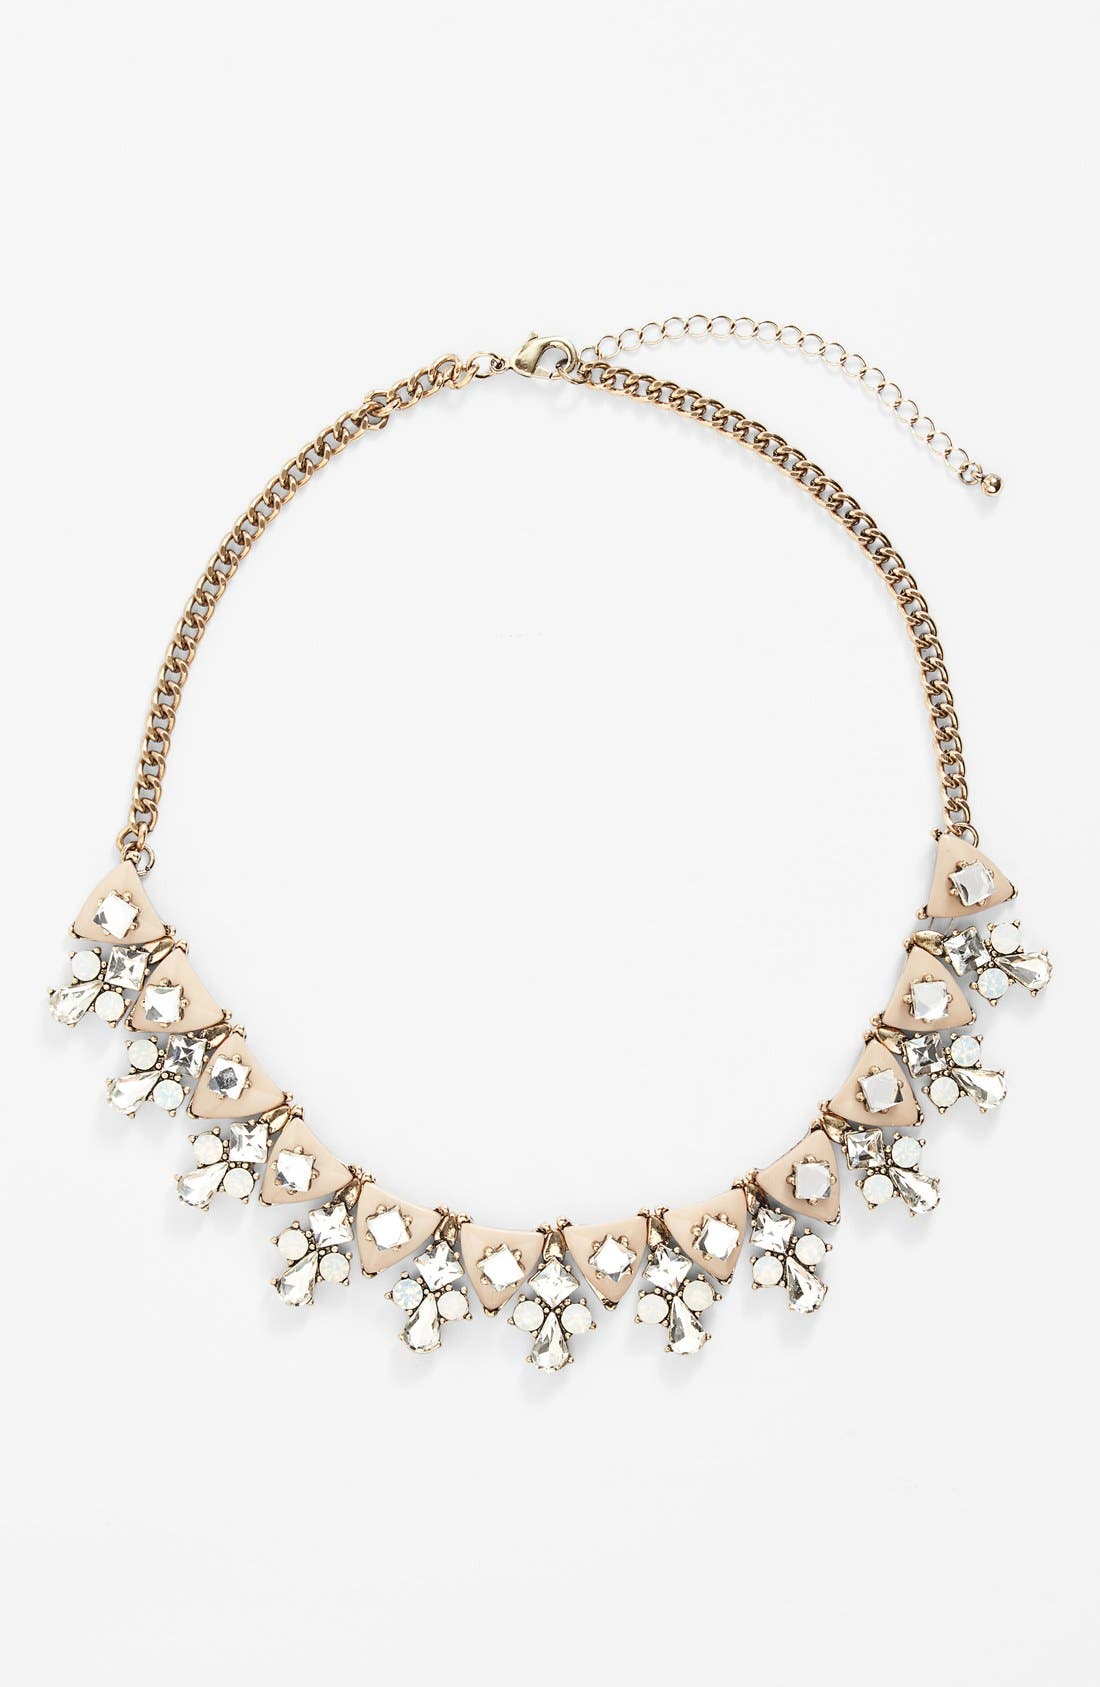 SOLE SOCIETY, 'Dainty' Statement Necklace, Main thumbnail 1, color, 650